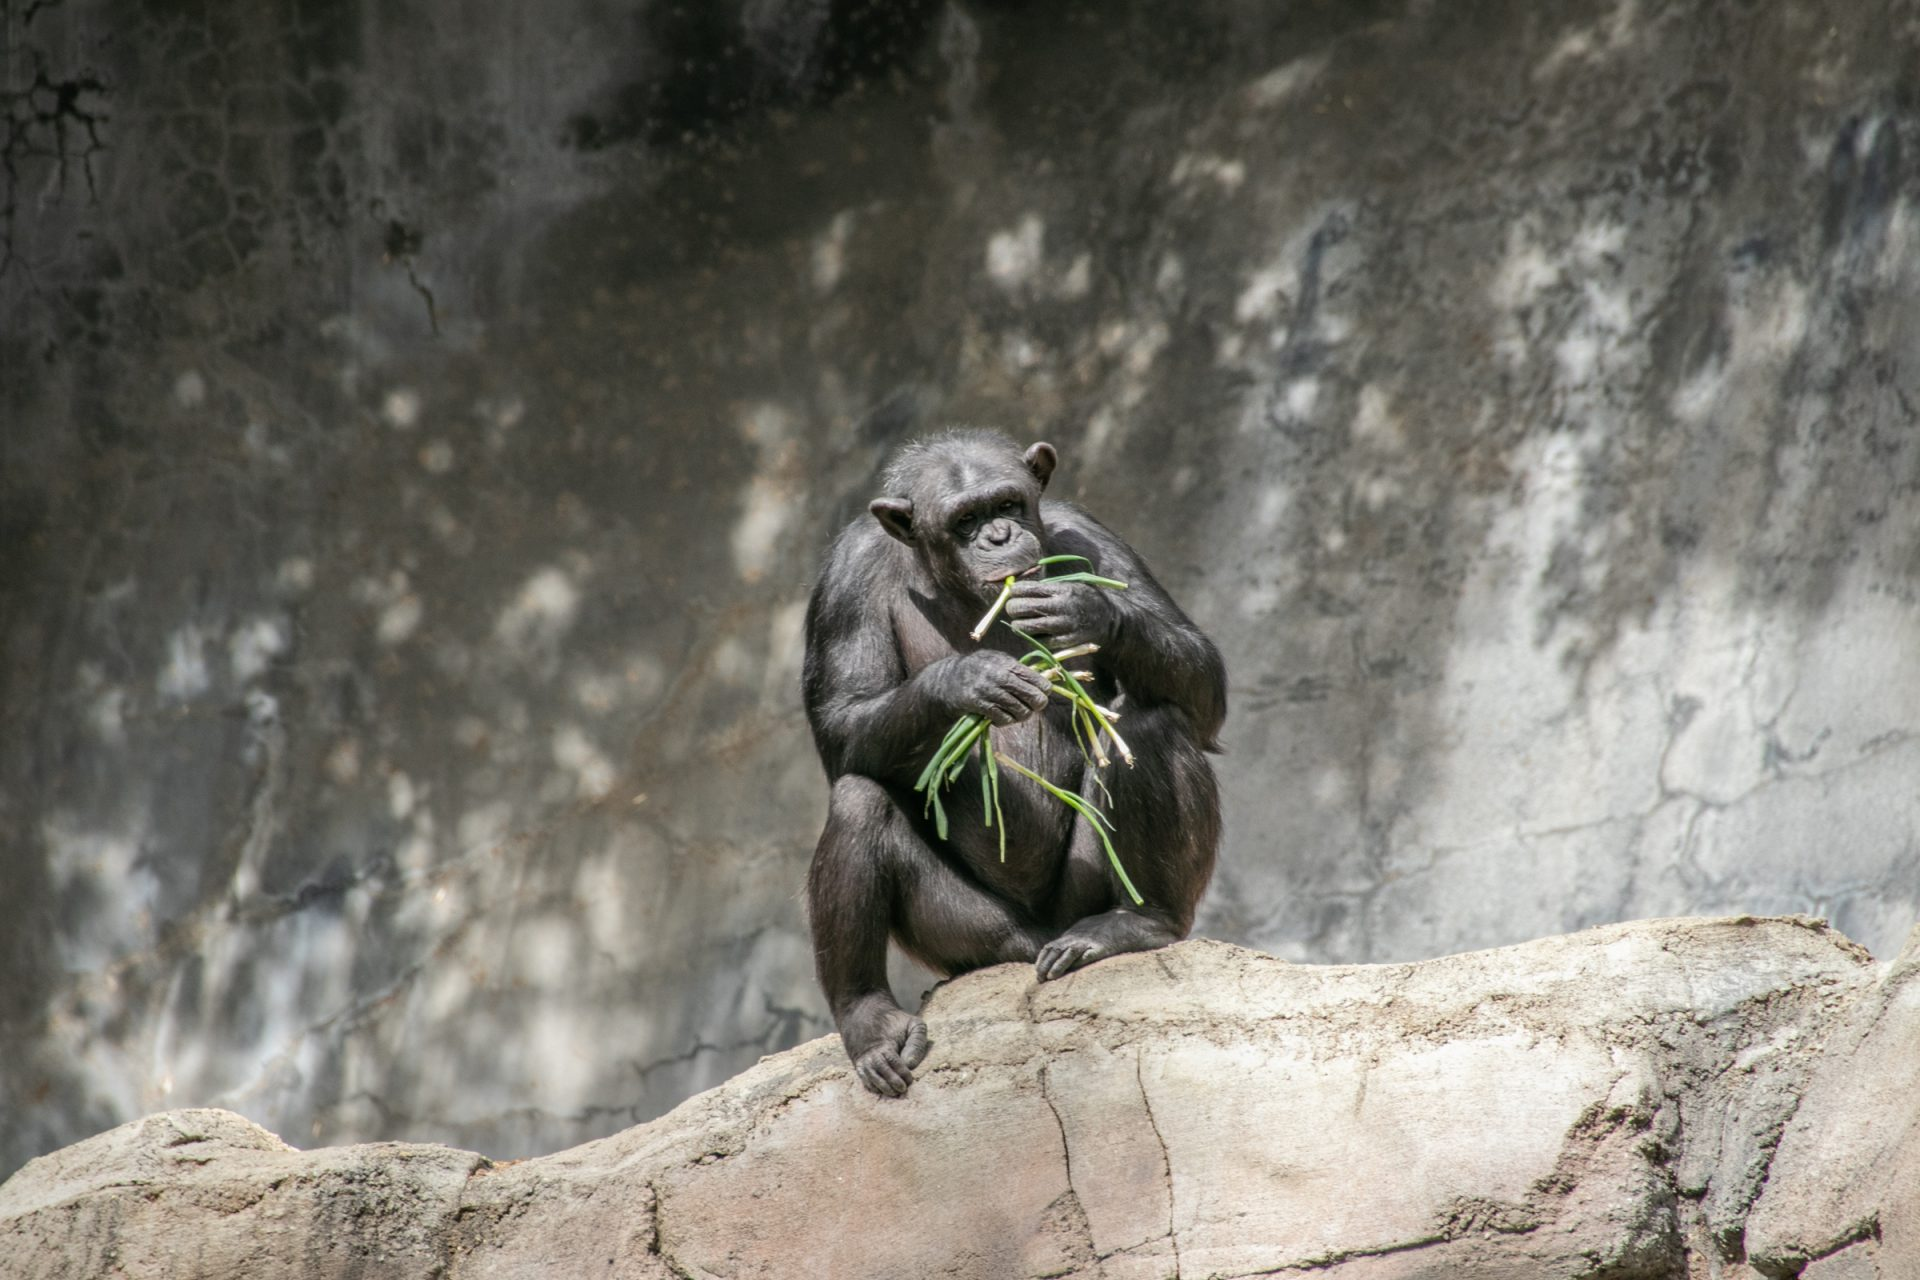 Ape Eating Green Plant Stems On Rock